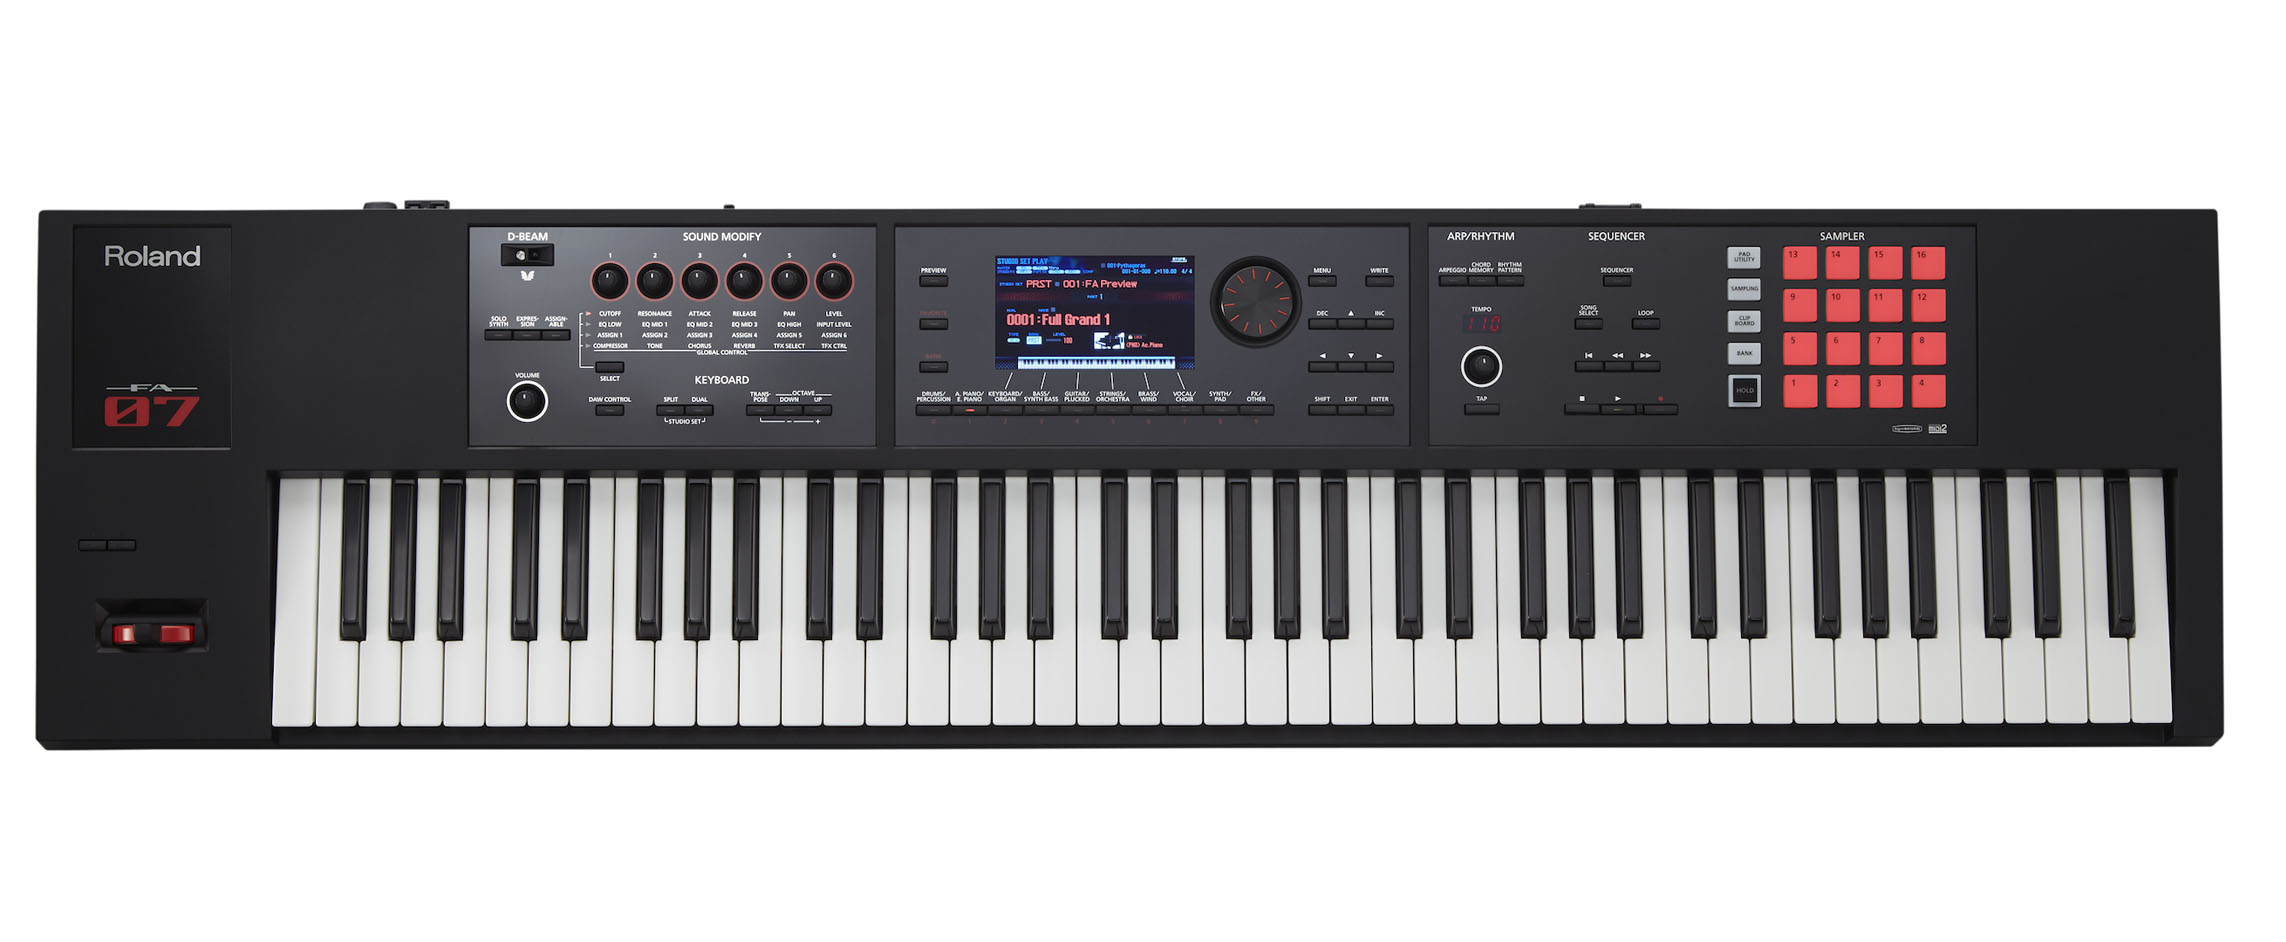 Roland Unveils Two Keyboards for Performance and Music Production